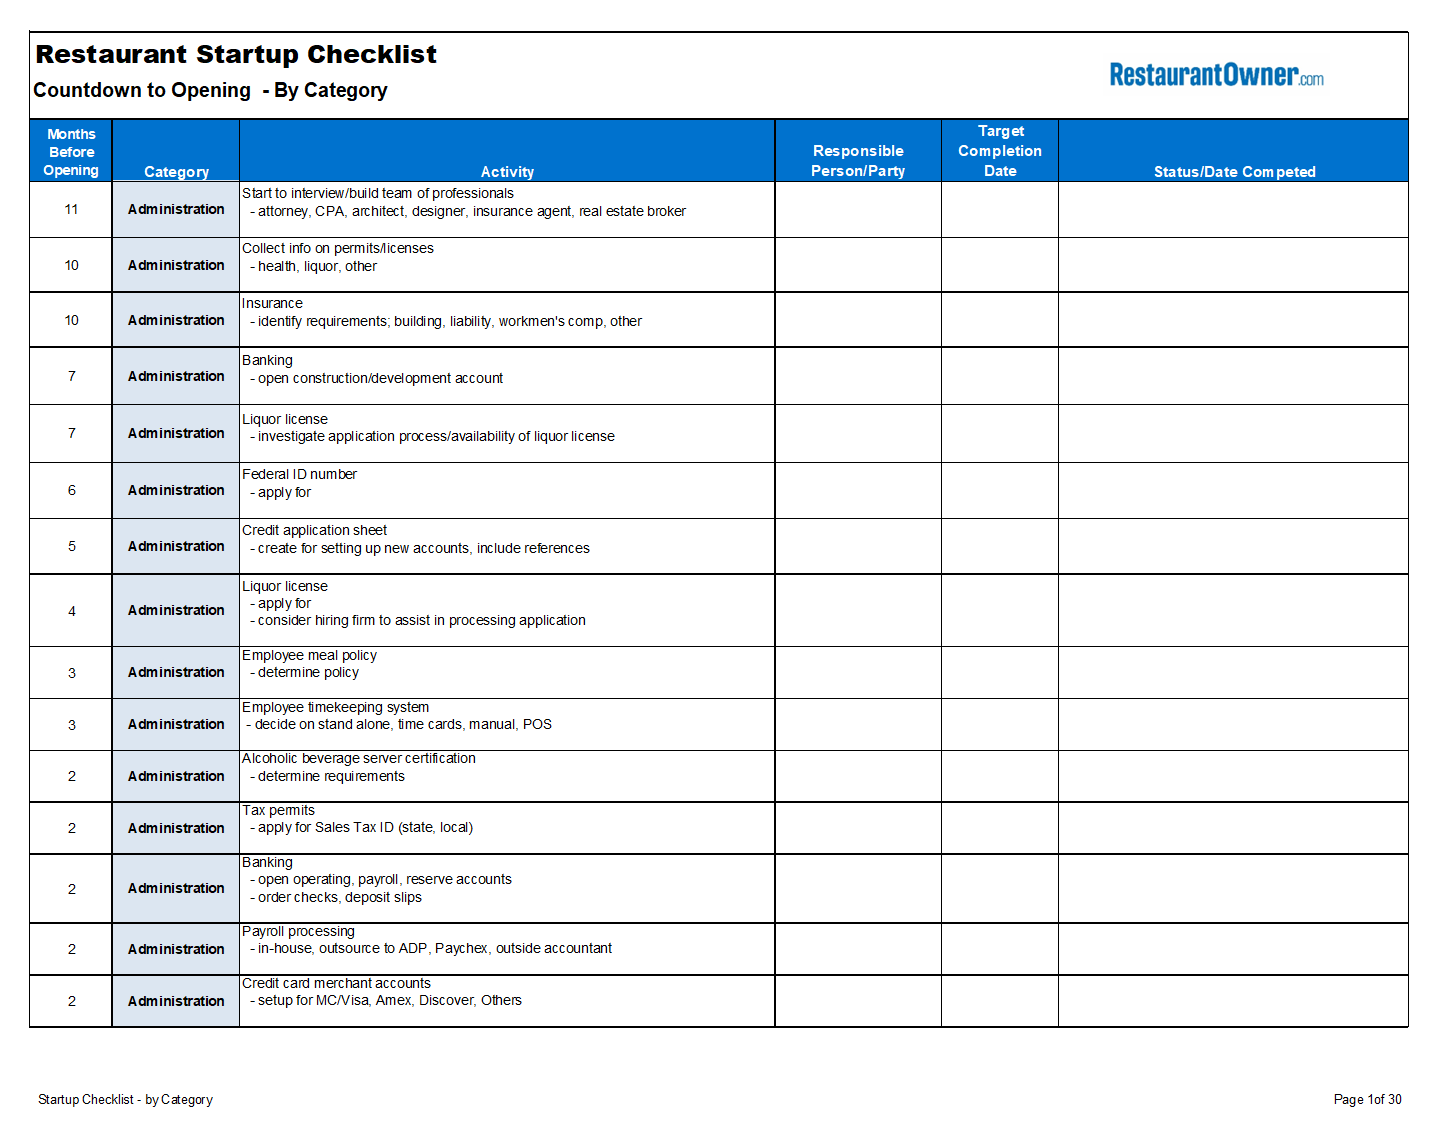 Restaurant startup checklist download the restaurant startup checklist wajeb Image collections